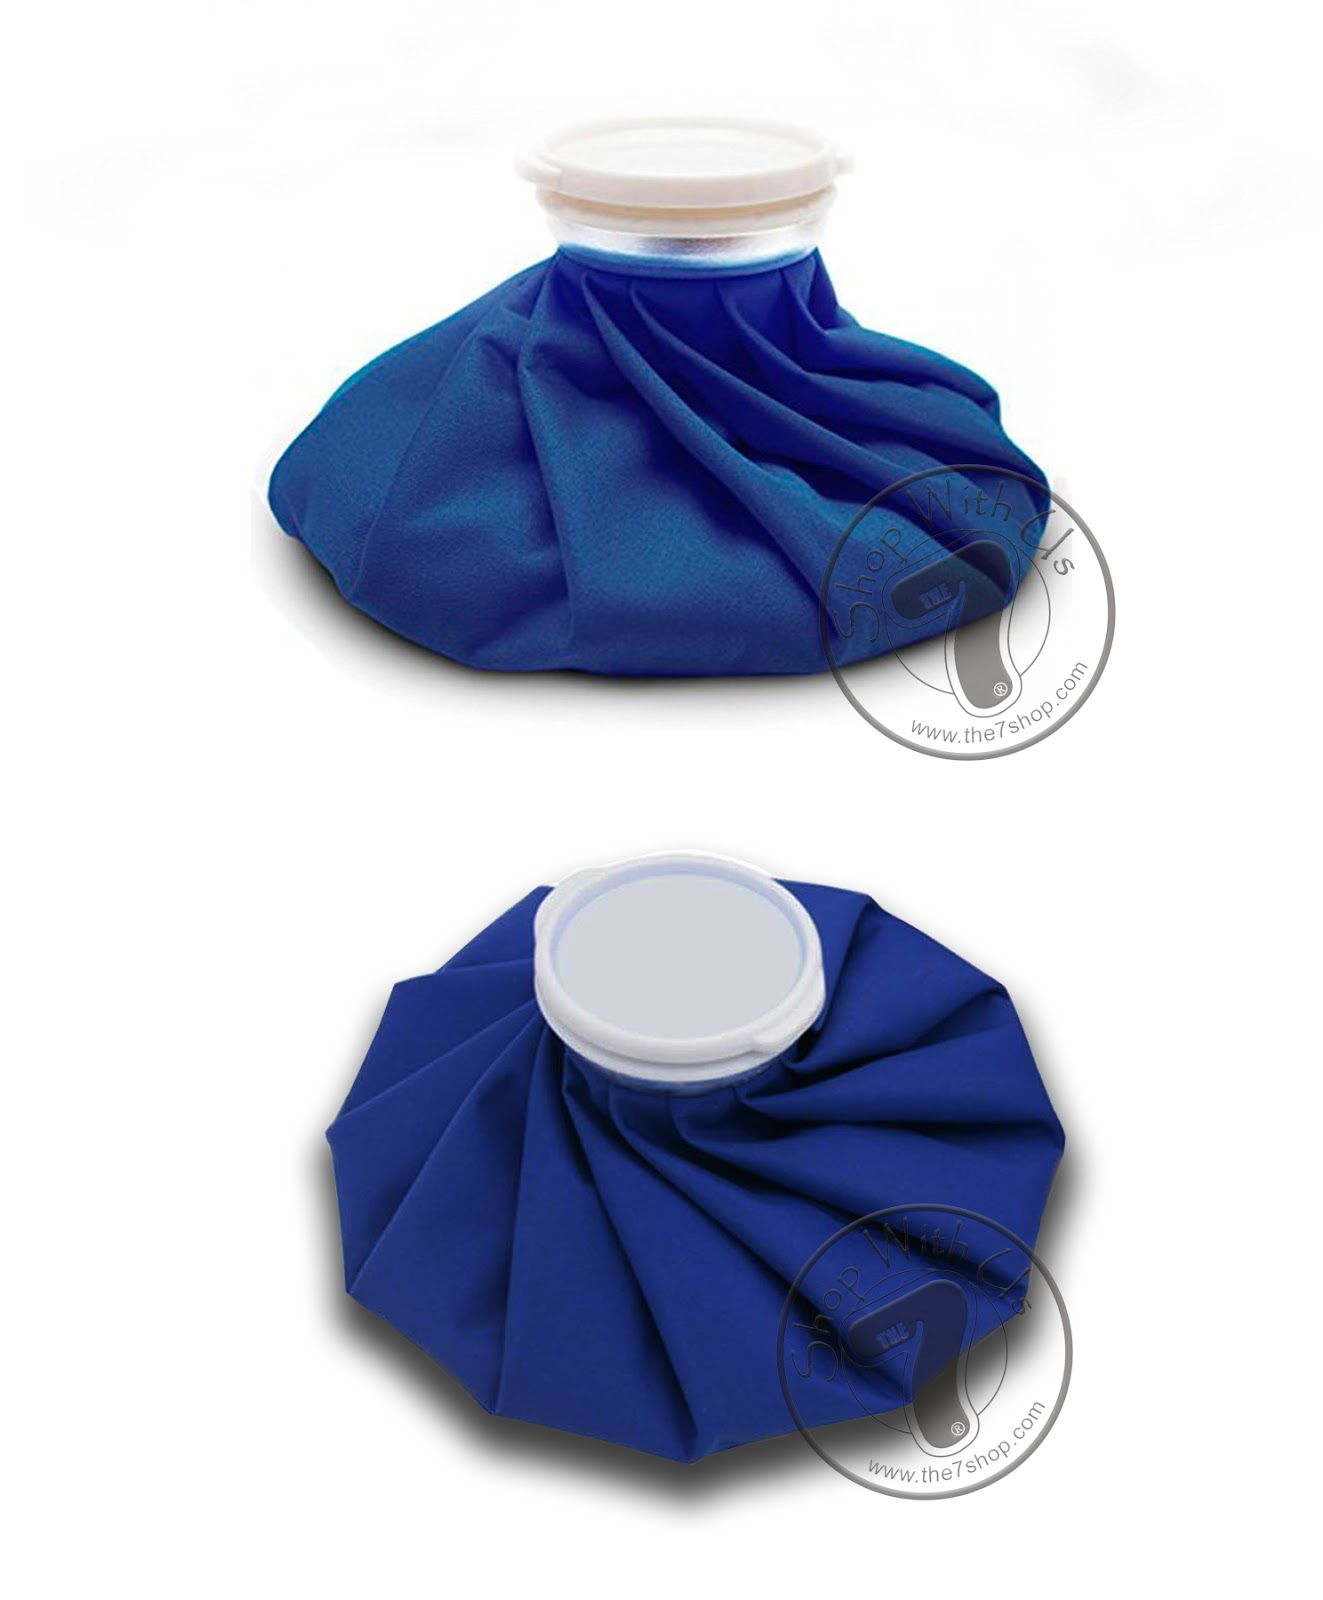 Bag Of Ice Price The 7 Shop Ice Bag Ice Bag Elastic Holding Strap